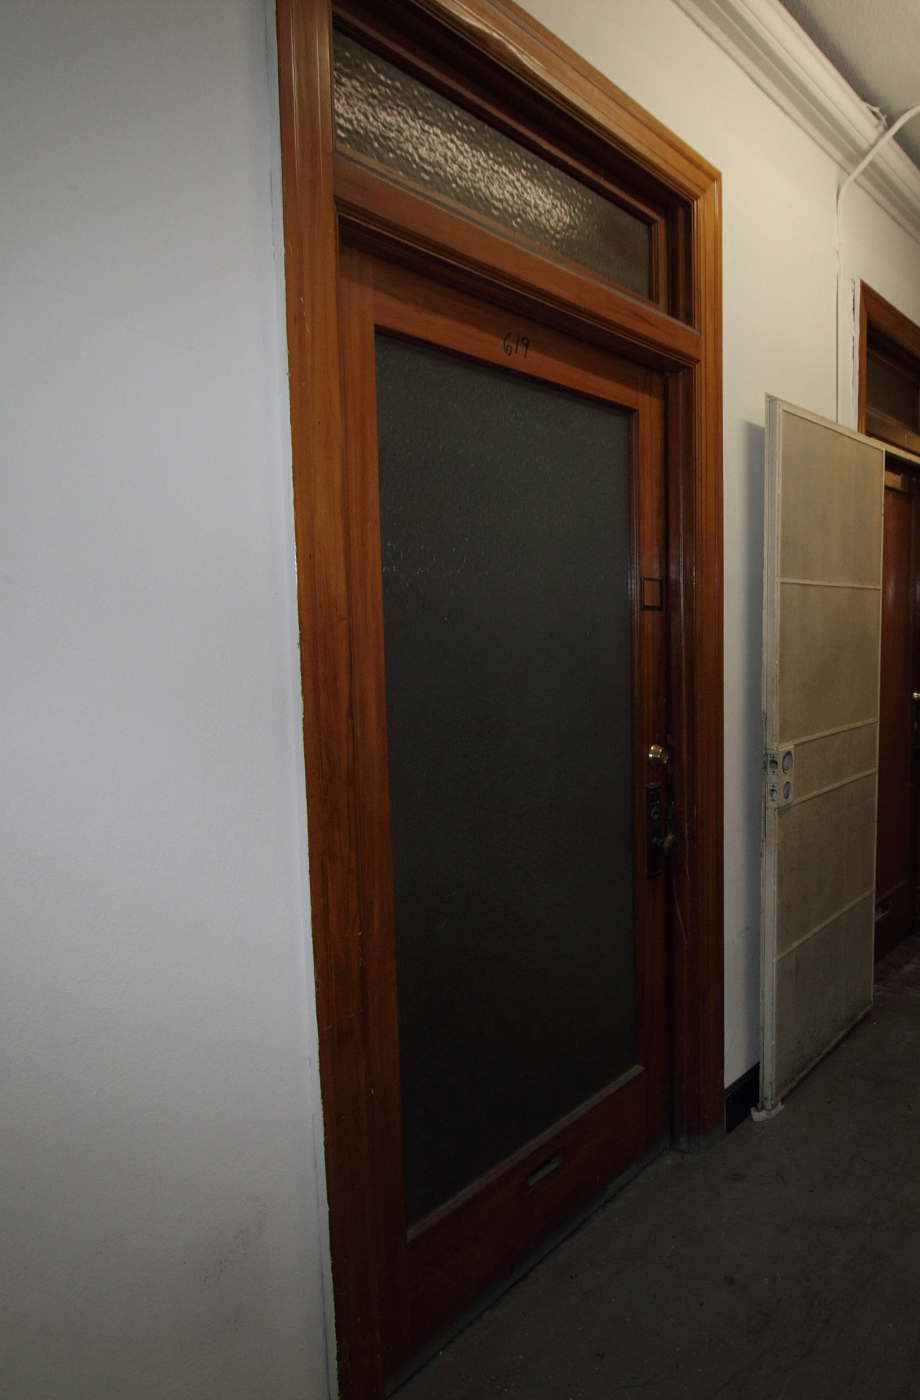 Original 1925 office door with transom, before rehabilitation.